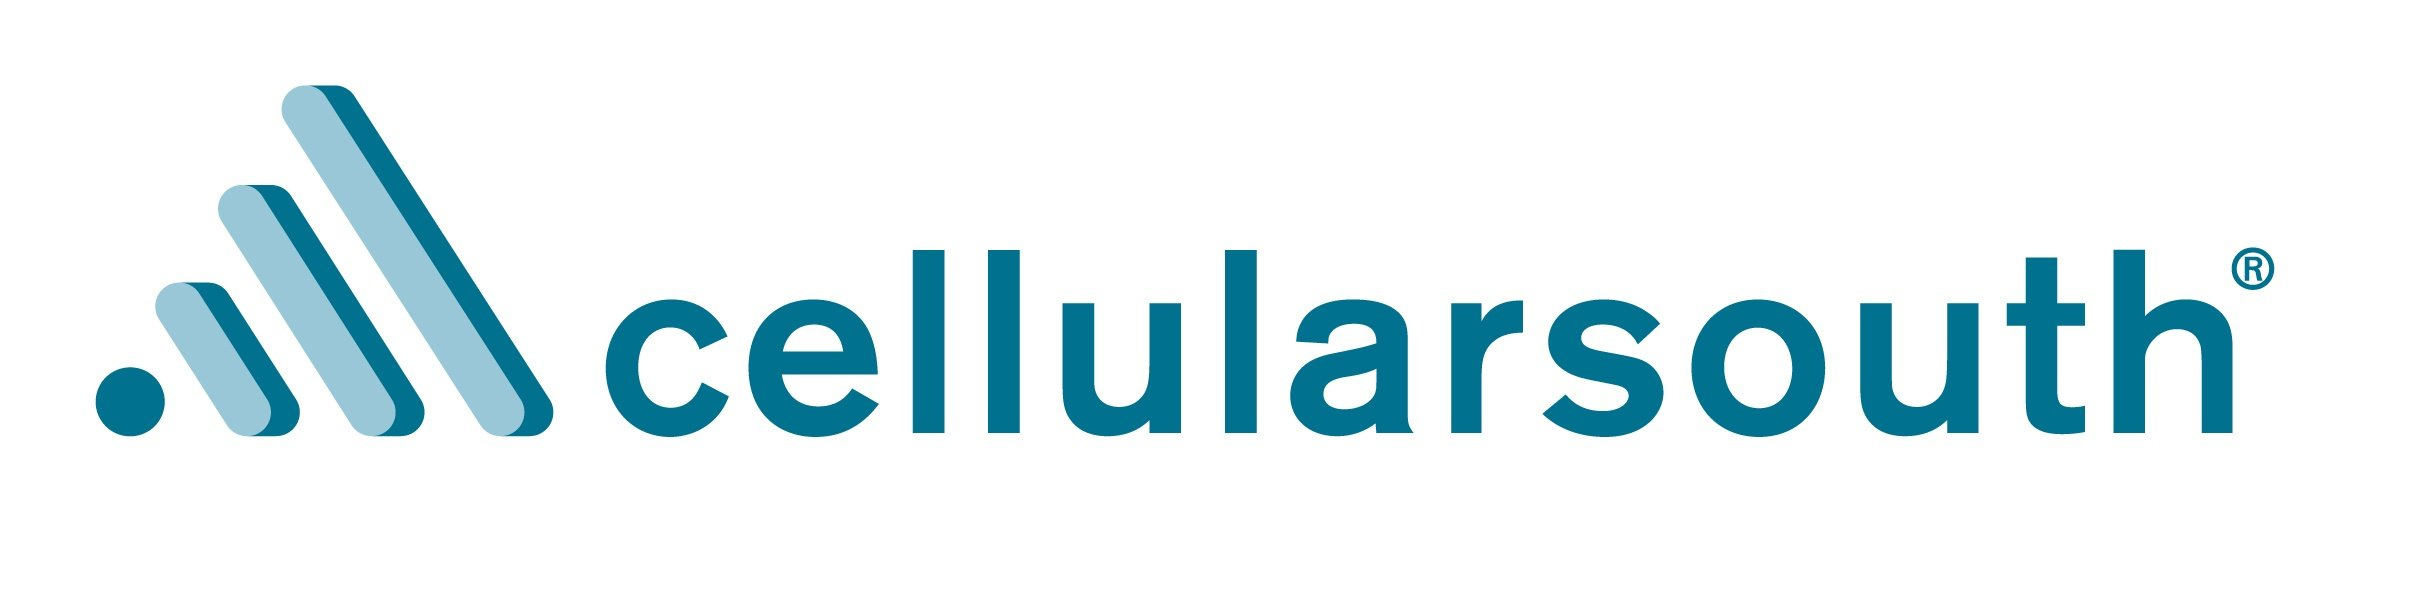 cellular_south_logo